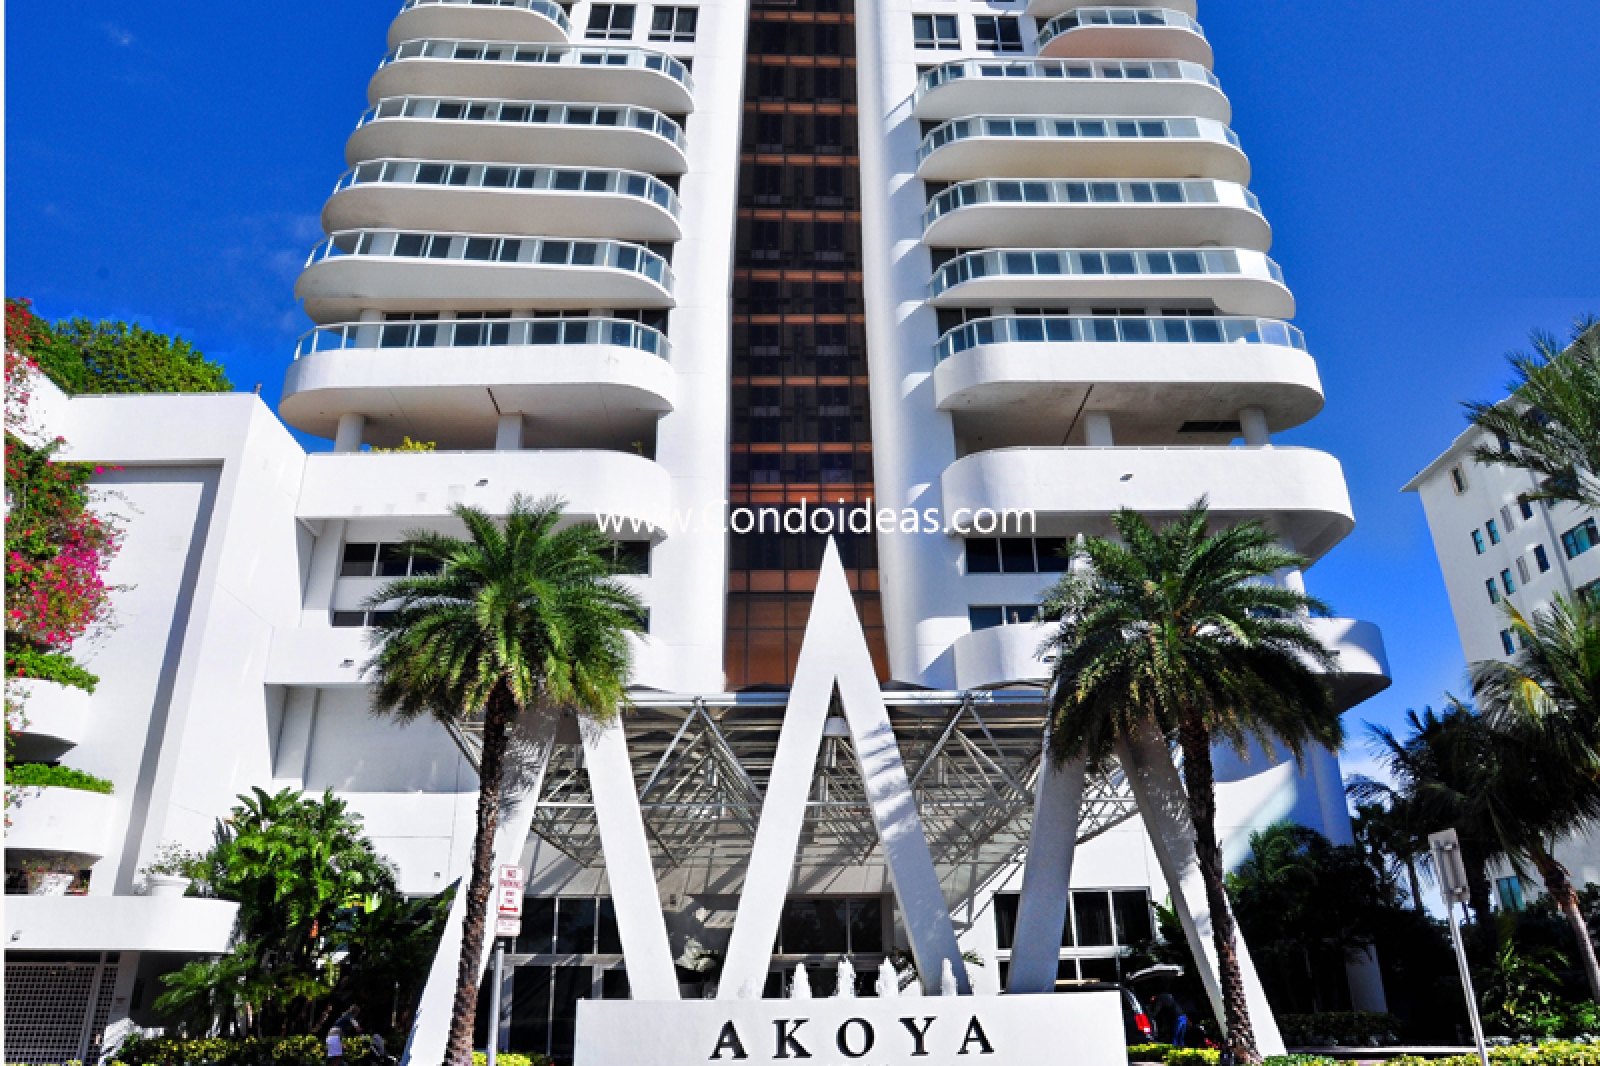 Akoya Condo Miami Beach View Luxury Condo For Sale At